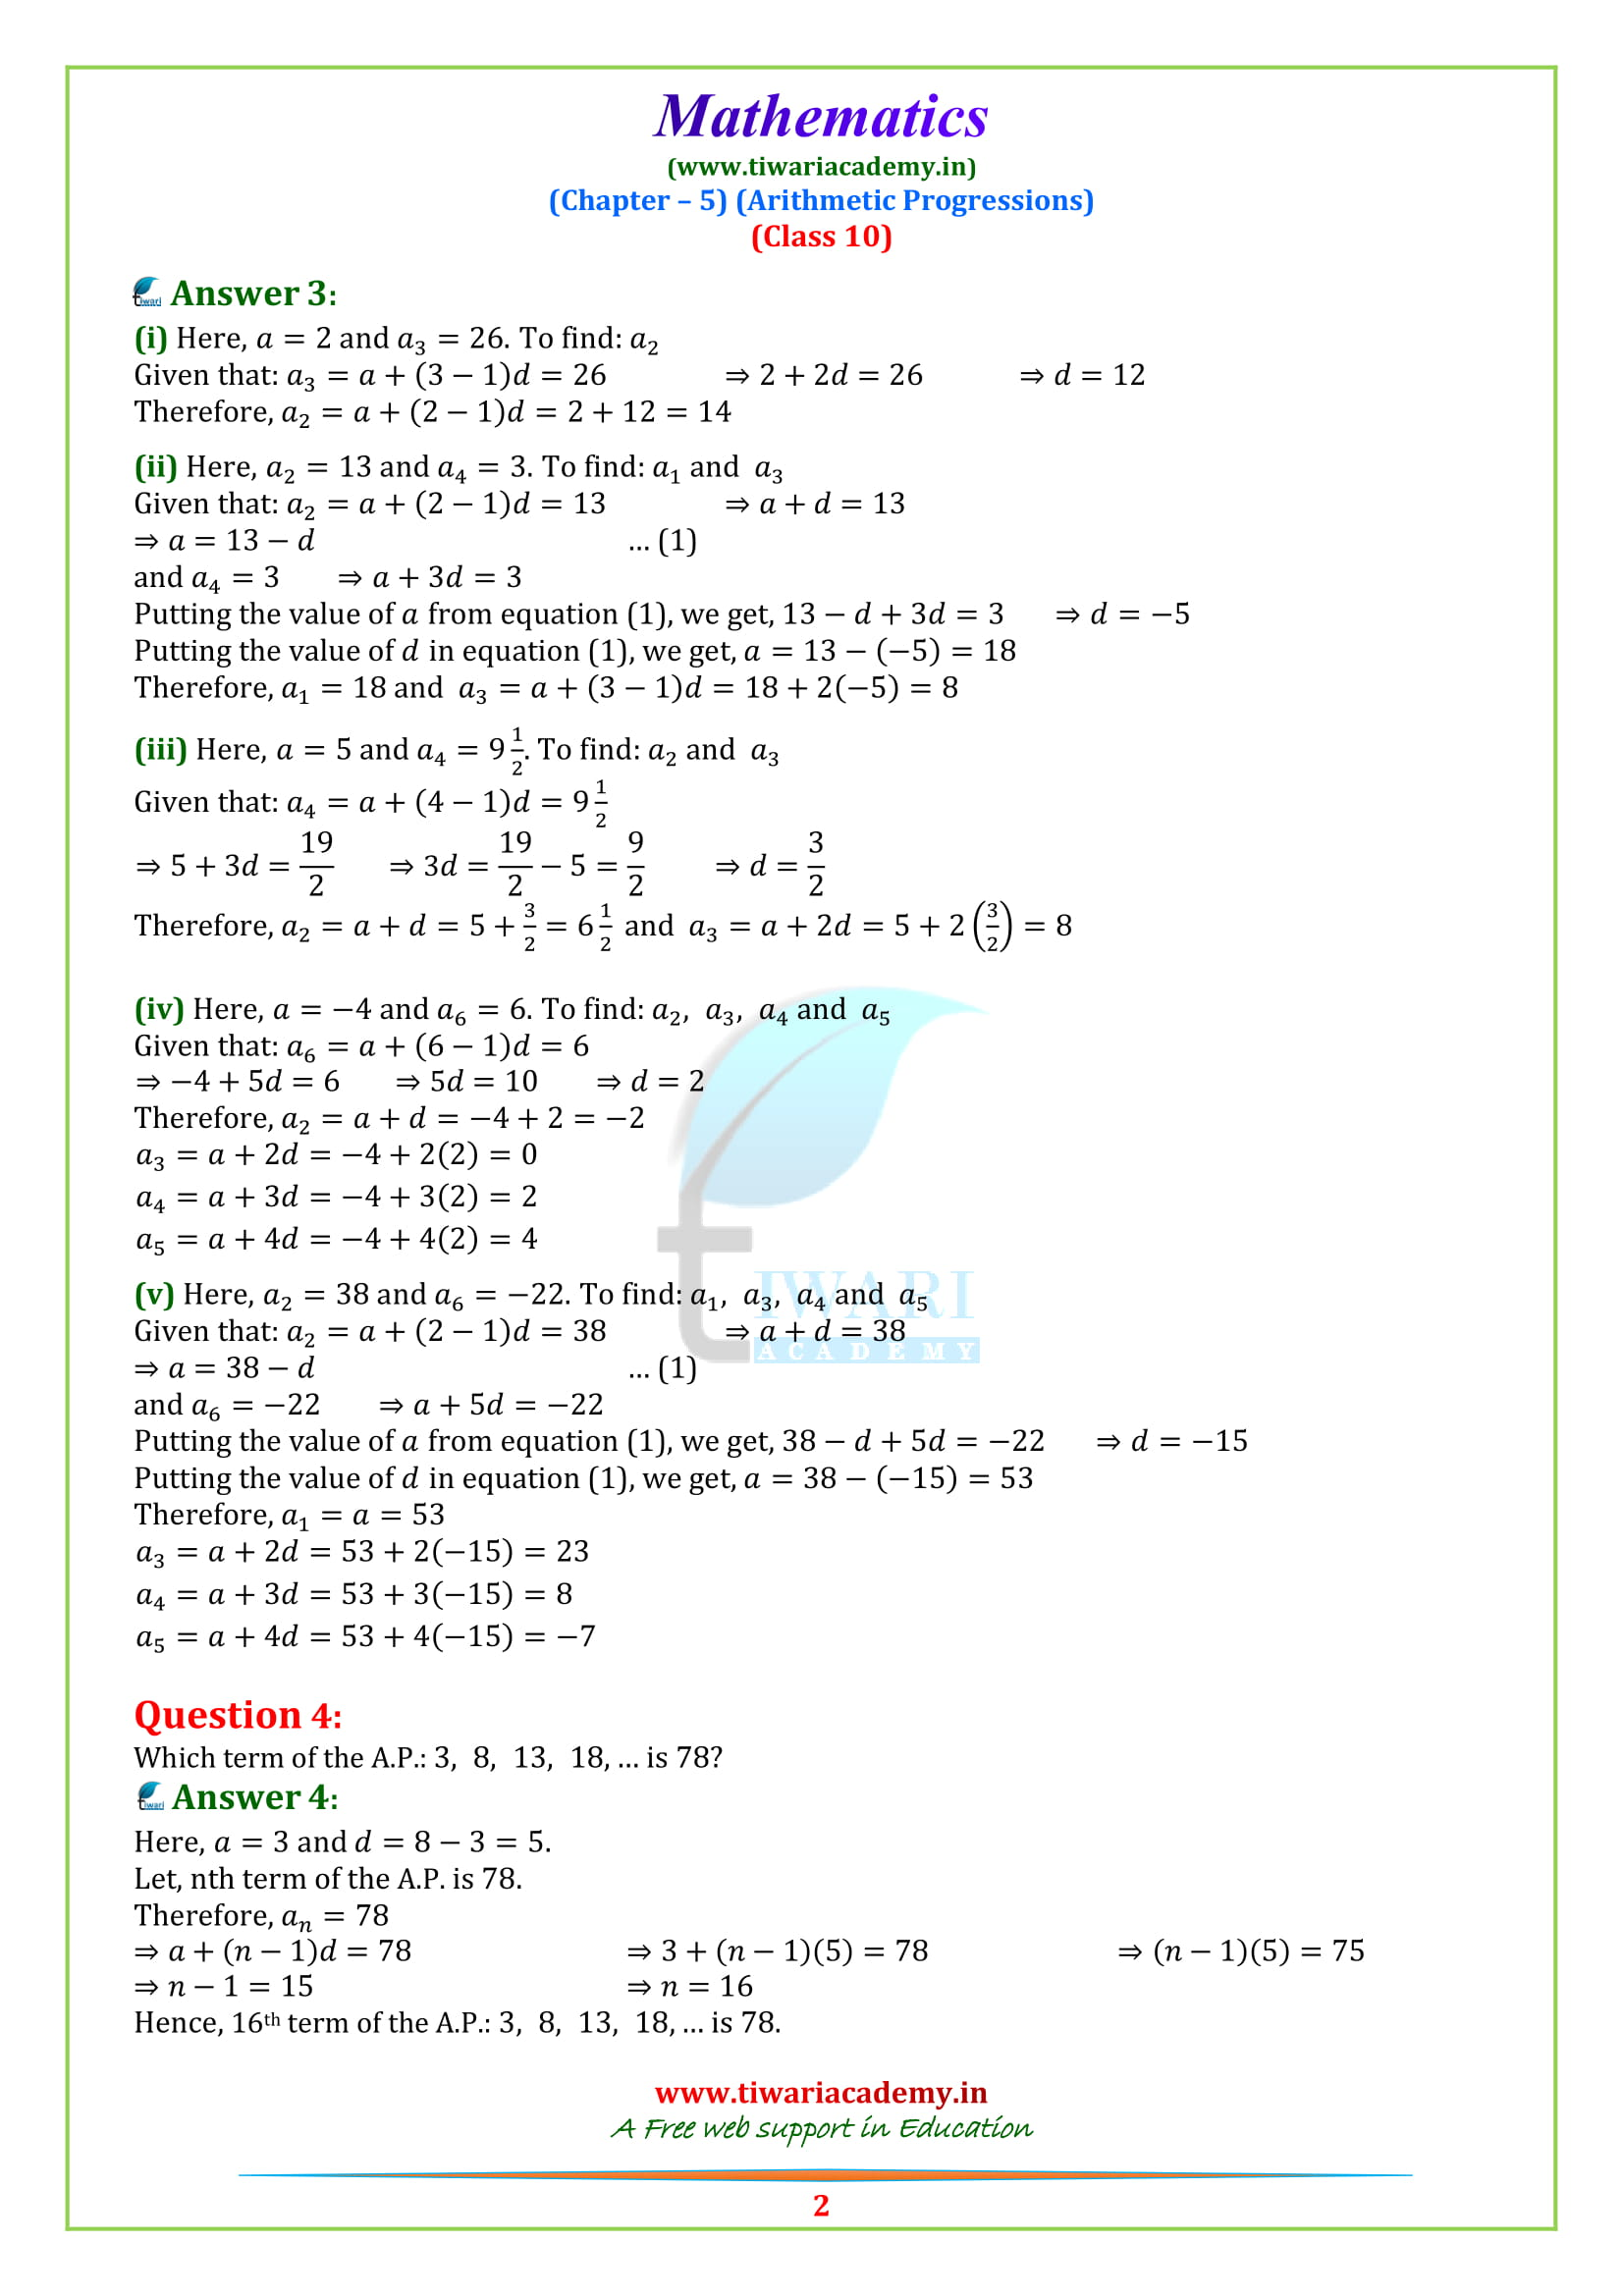 NCERT Solutions for class 10 Maths Exercise 5.2 question 5, 6, 7, 8